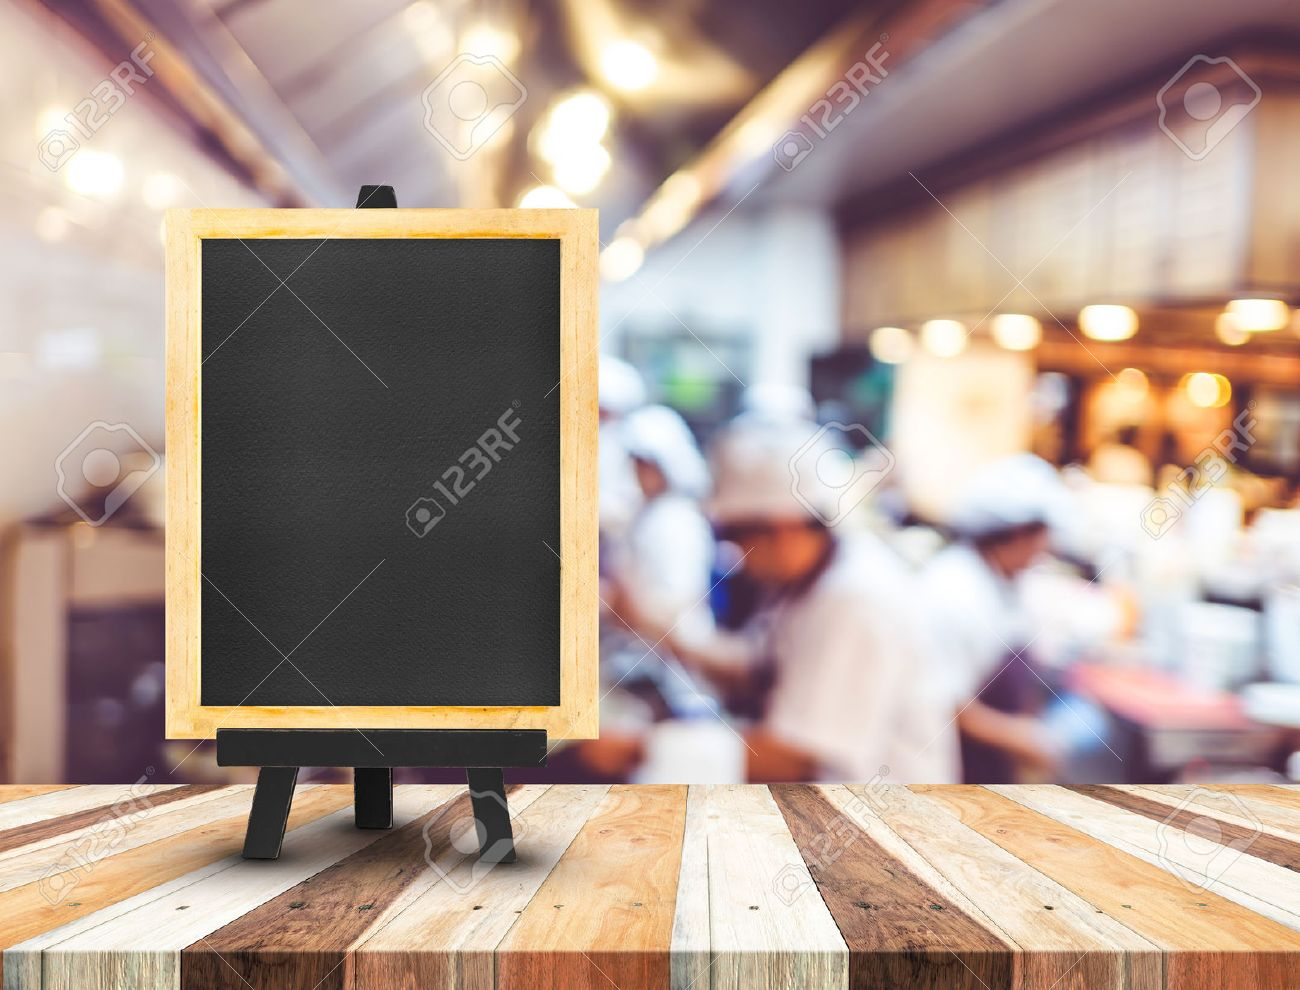 Restaurant Kitchen Background Blackboard Menu With Easel On Wooden Table With Blur Open Kitchen